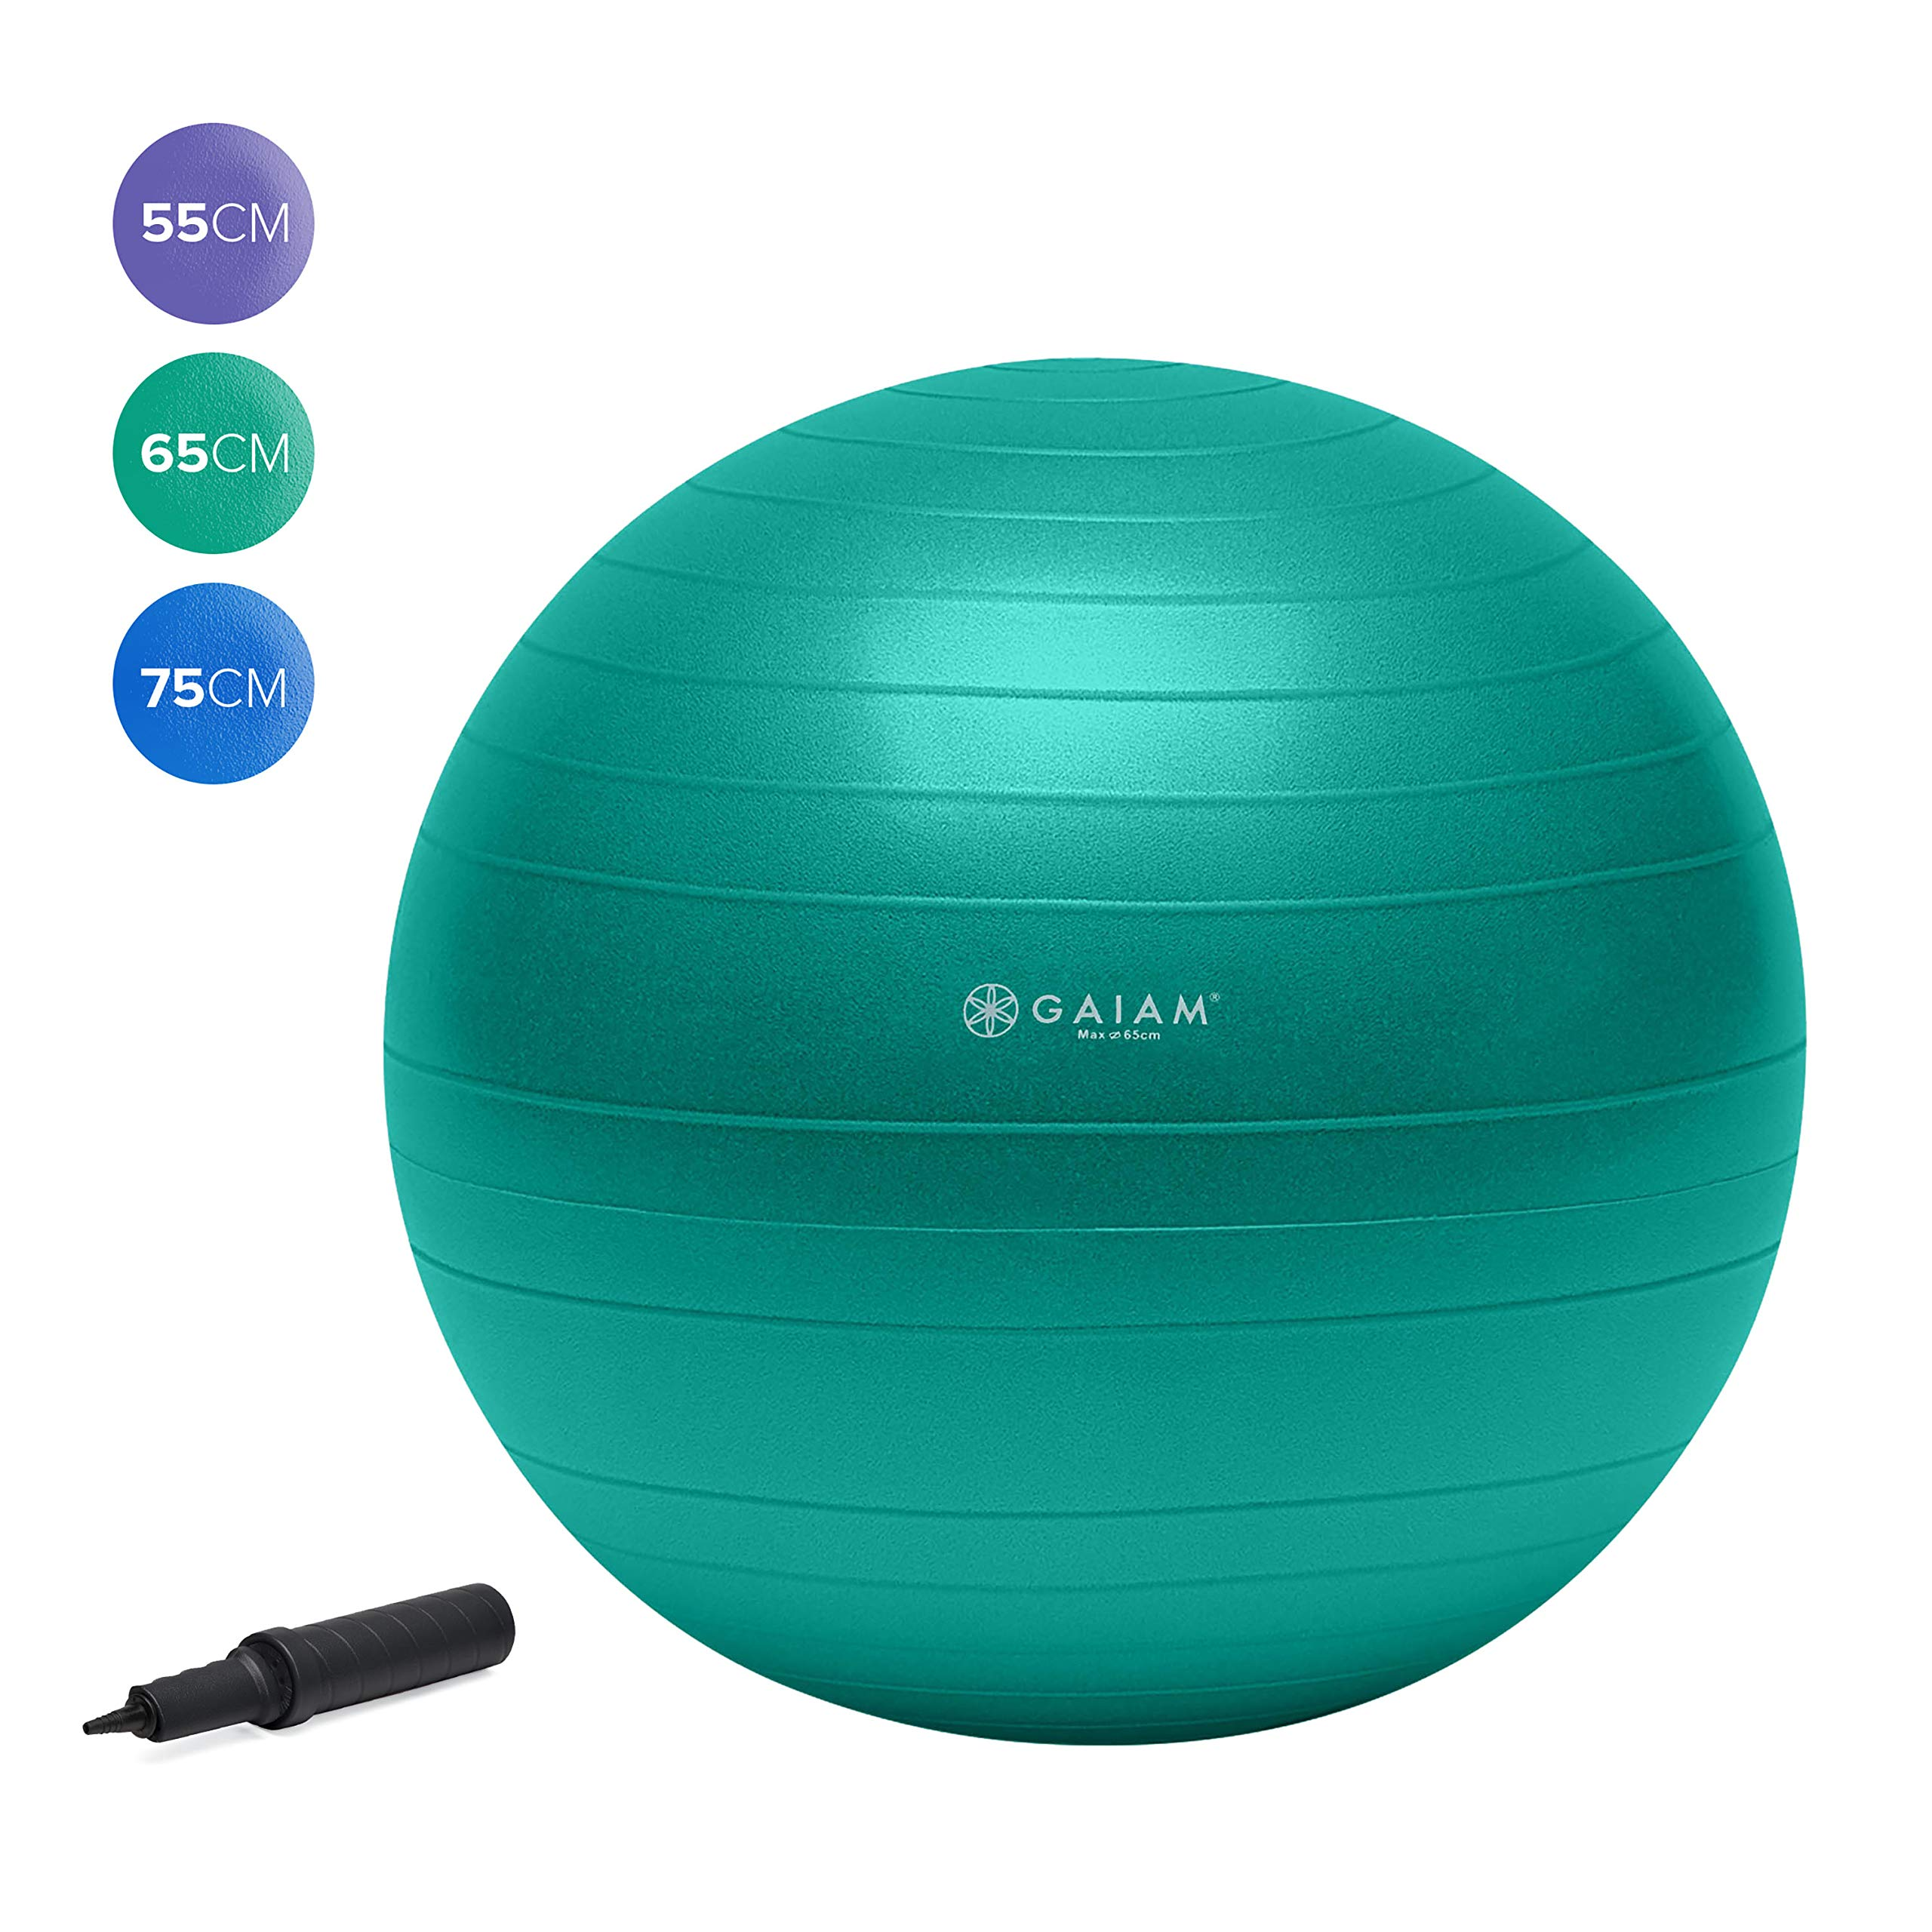 Gaiam Total Body Balance Ball Kit - Includes 65cm Anti-Burst Stability Exercise Yoga Ball, Air Pump, Workout Program by Gaiam